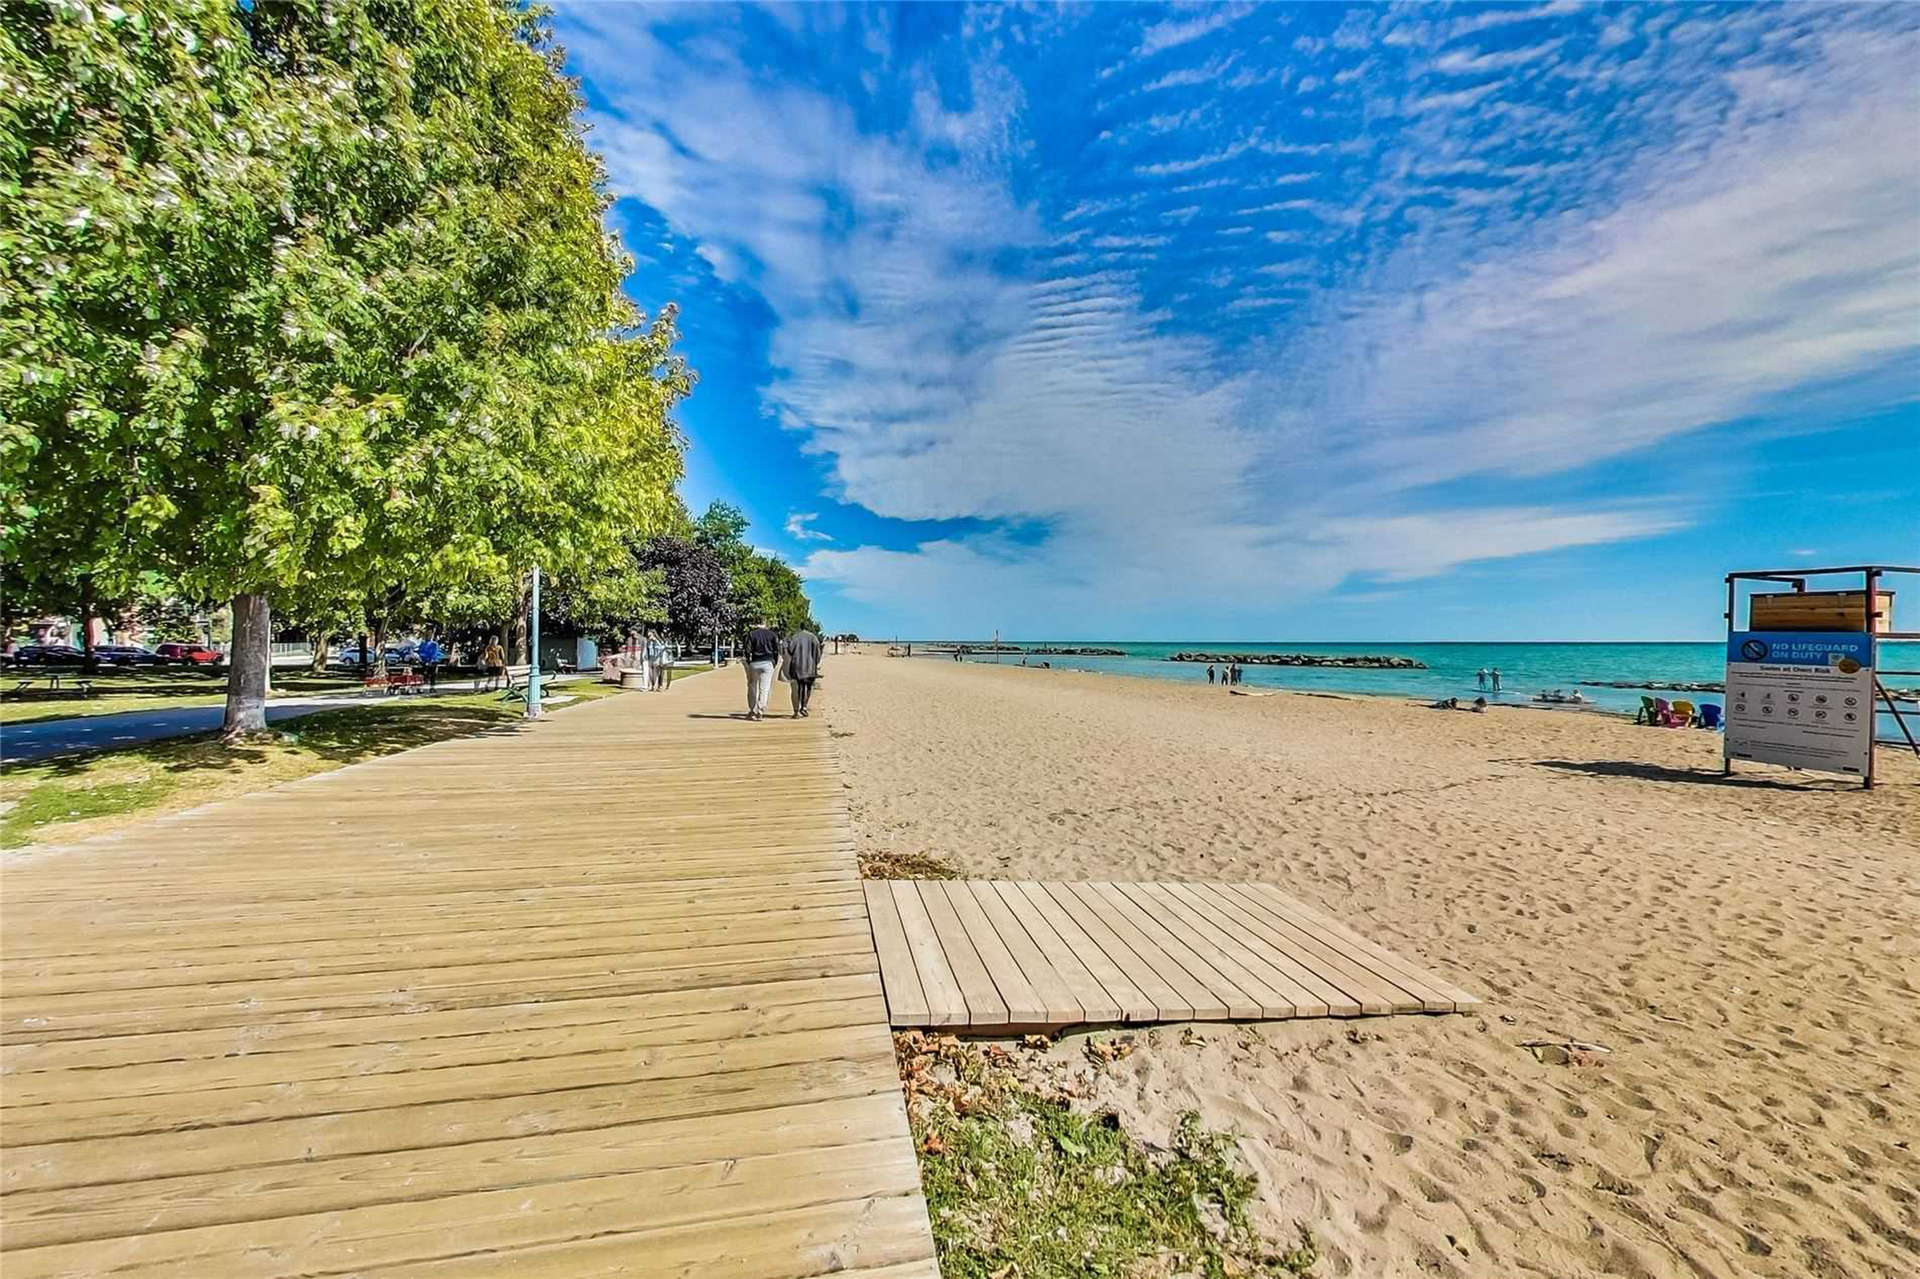 The Beaches at 6 - 7 Balsam Avenue, The Beaches, Toronto